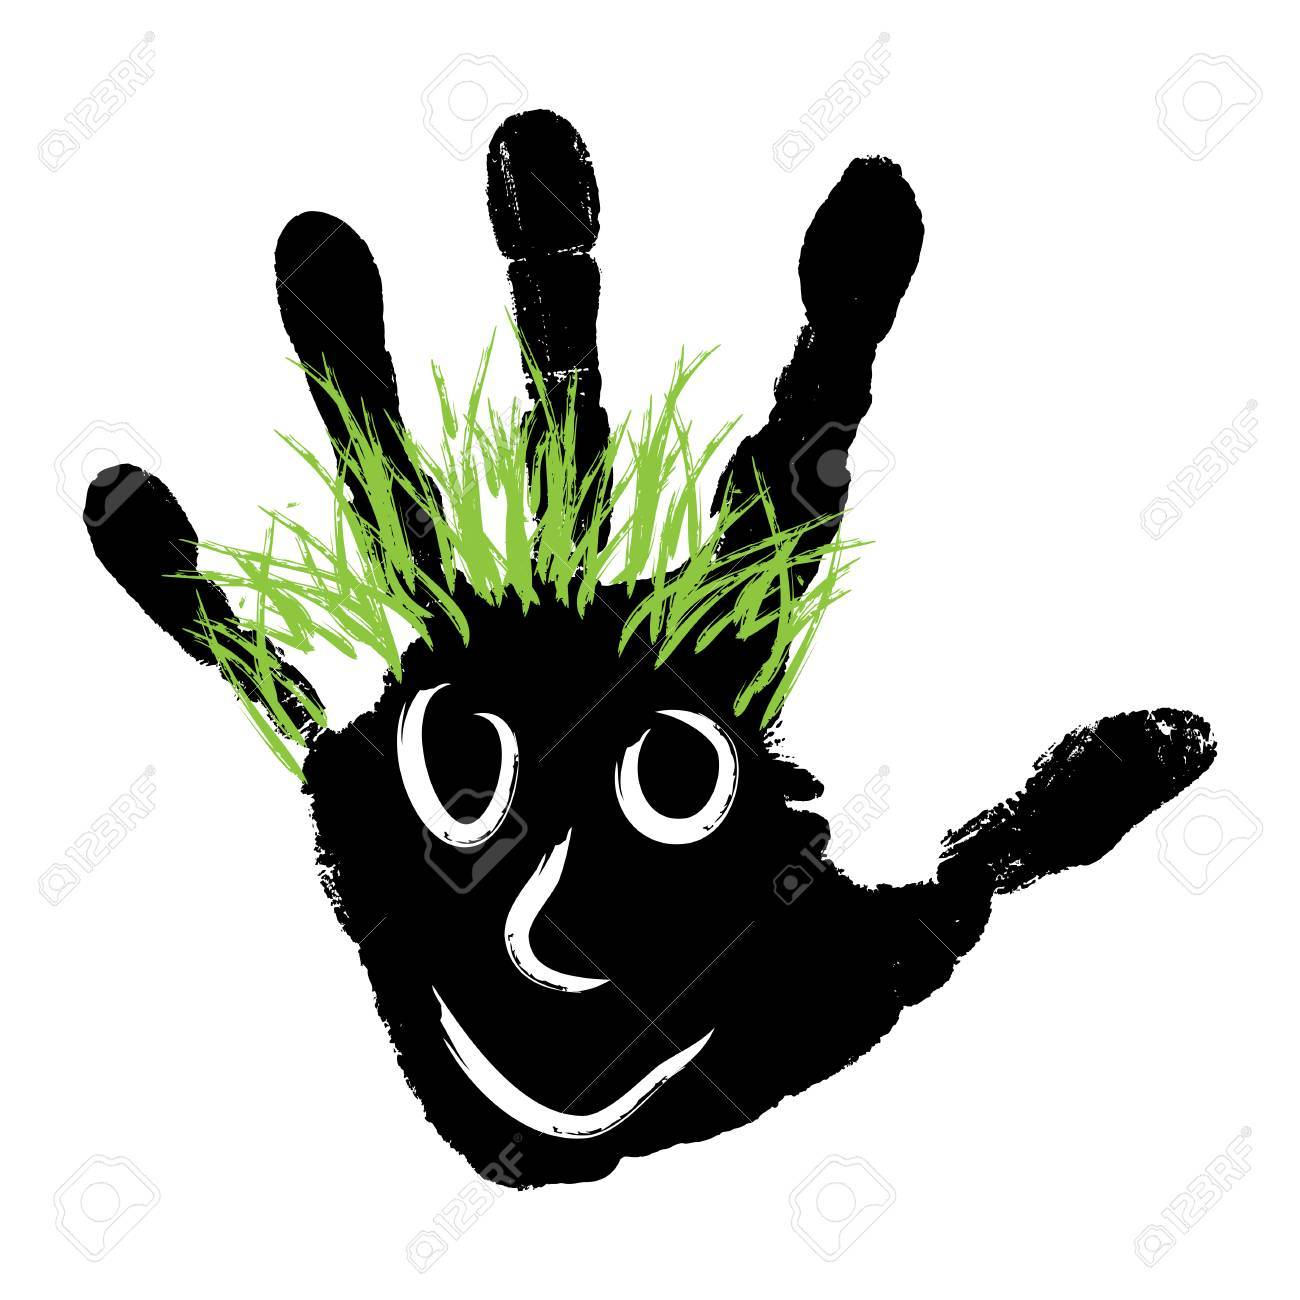 Conceptual Cute Paint Human Hand Or Handprint Of Child With Happy Face And Green Hair Isolated